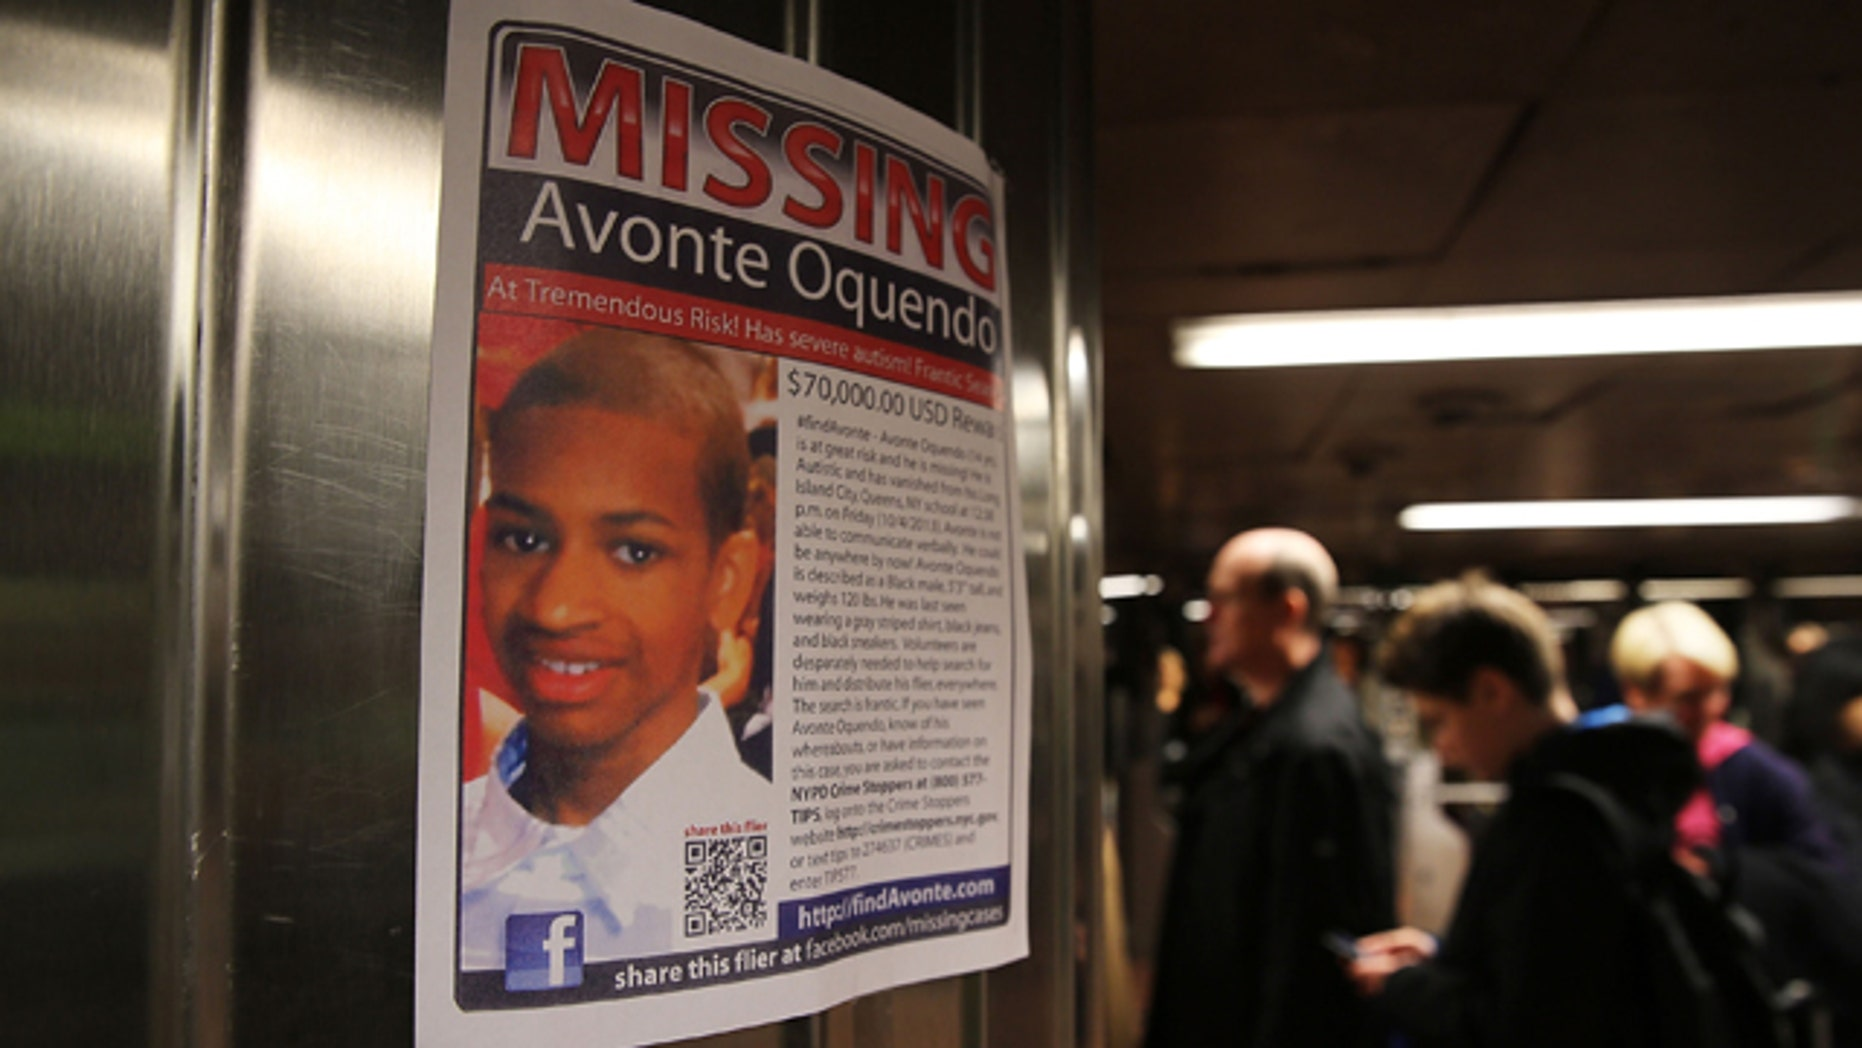 A poster for a missing autistic 14-year-old named Avonte Oquendo hangs in subway station on October 21, 2013 in New York City.